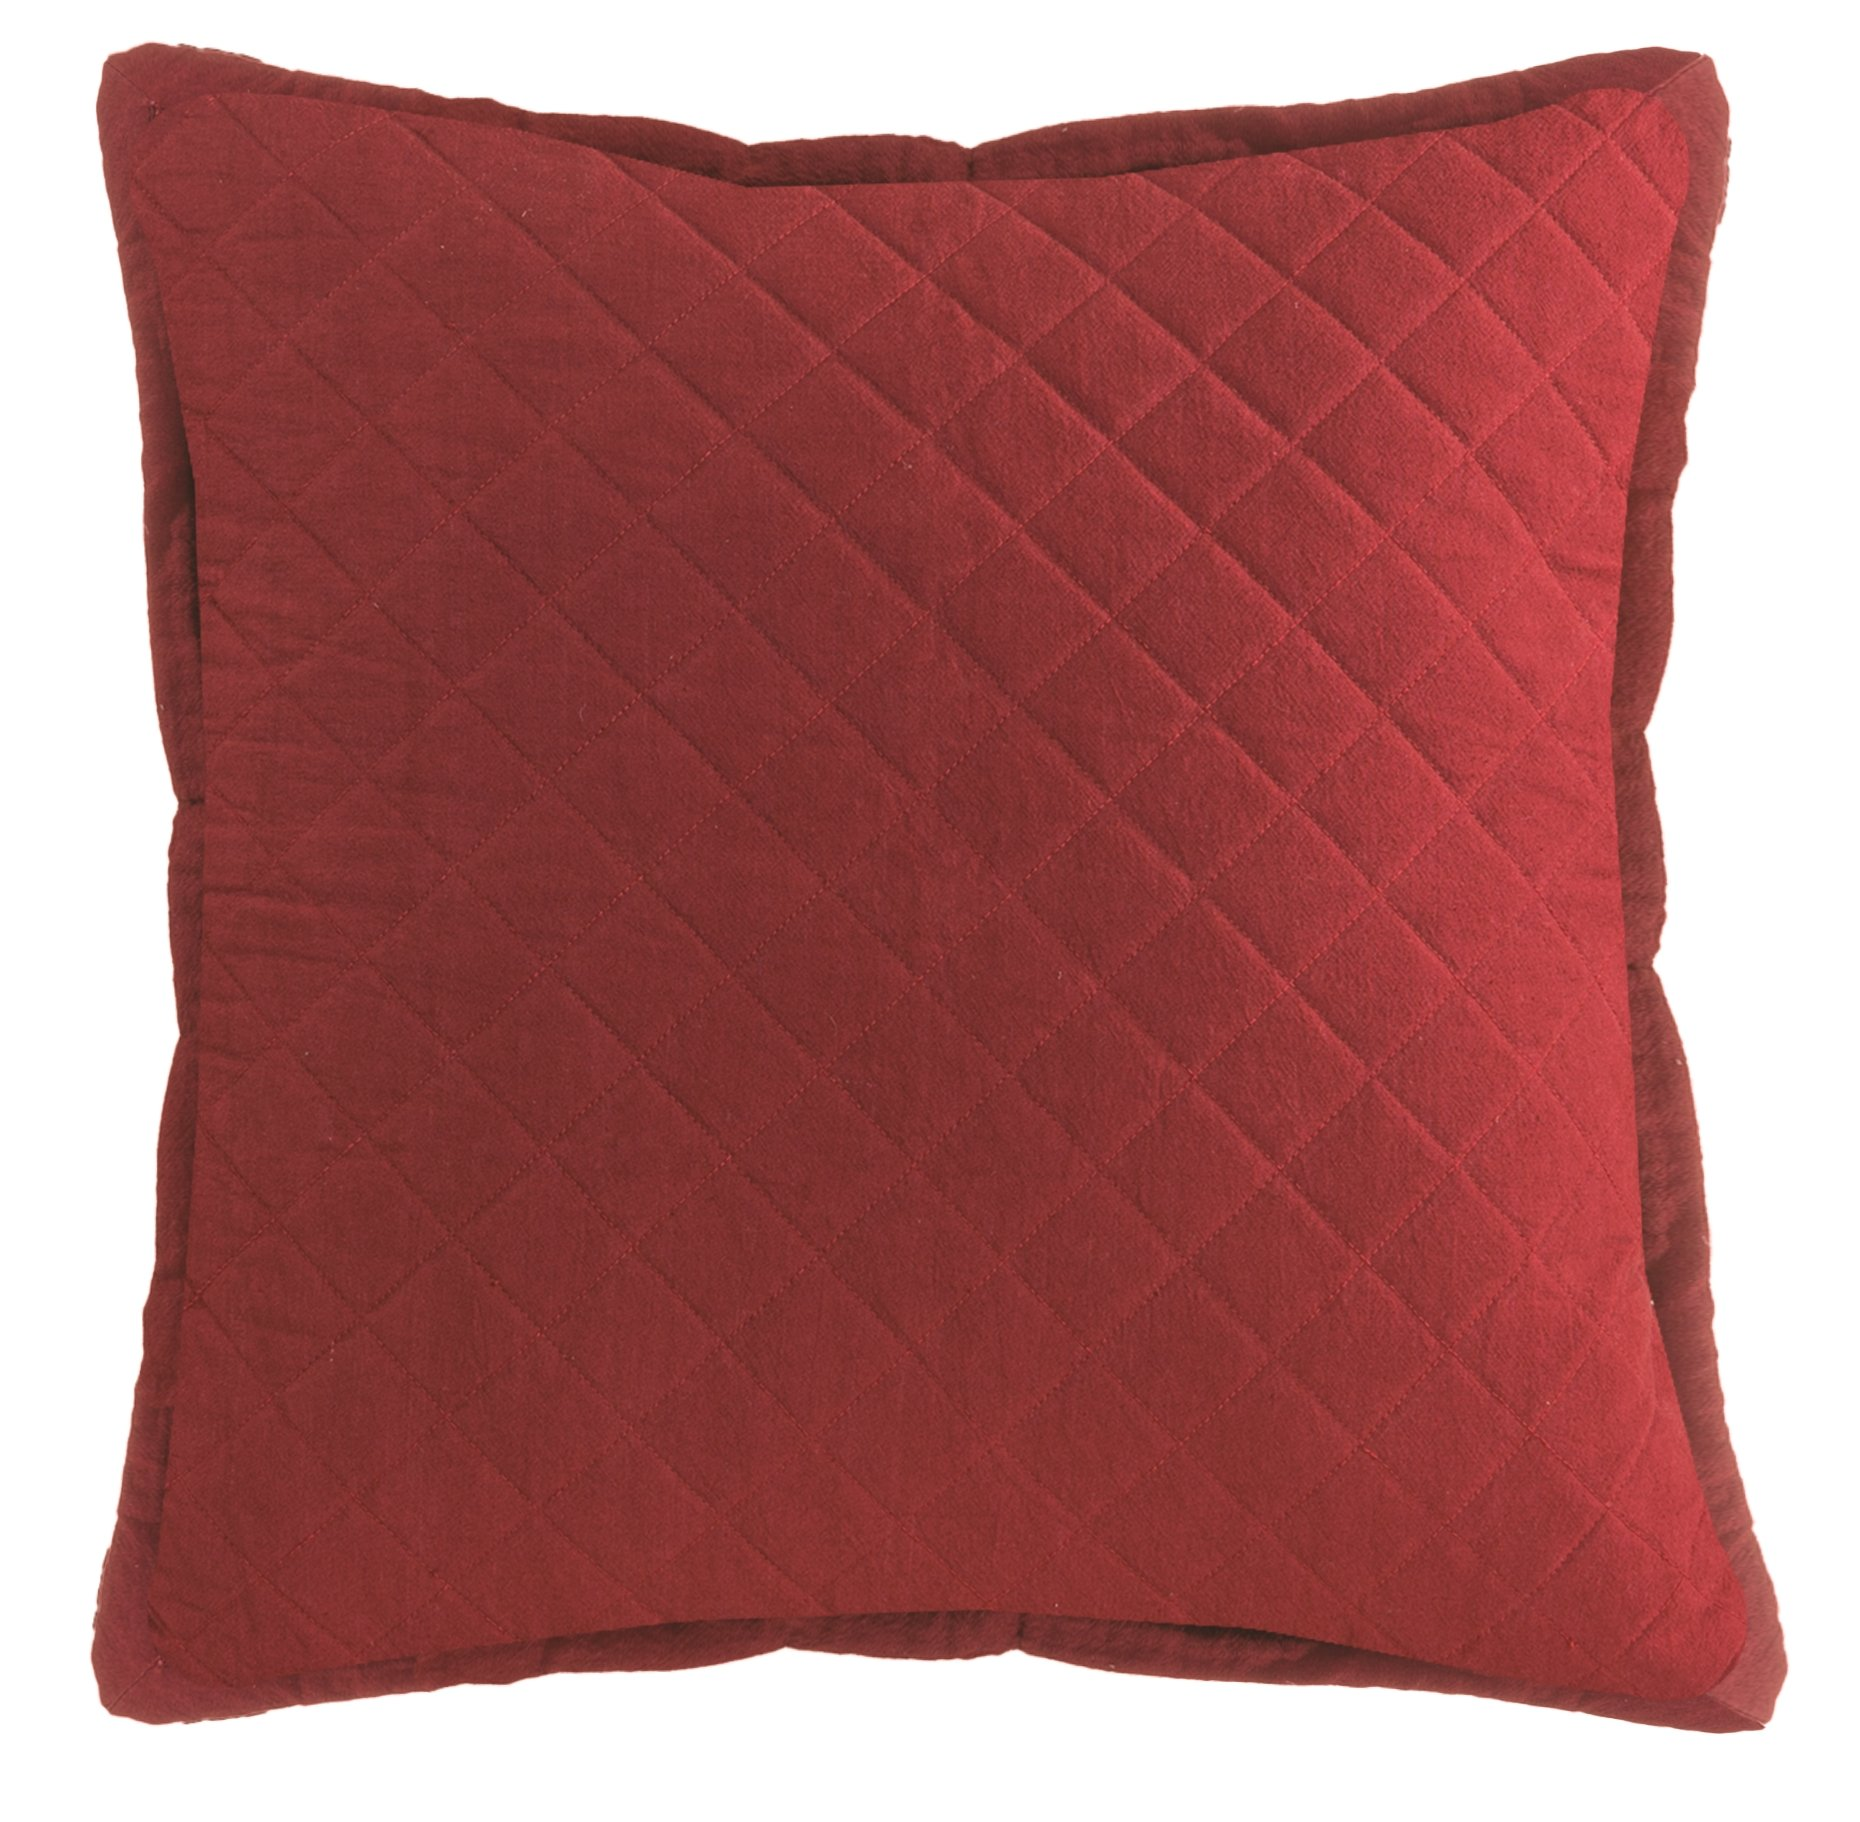 """Heritage Lace FH-016 Farmhouse Quilted Pillow, Red, 22"""" x 22"""" - Measures 22x 22 100 Percent cotton Pillow cover: machine wash cold, gentle. Do not bleach. Lay flat or hang to dry. Touch up with cool iron if desired. Pillow insert: spot clean only - living-room-soft-furnishings, living-room, decorative-pillows - 81mnyNS3ldL -"""